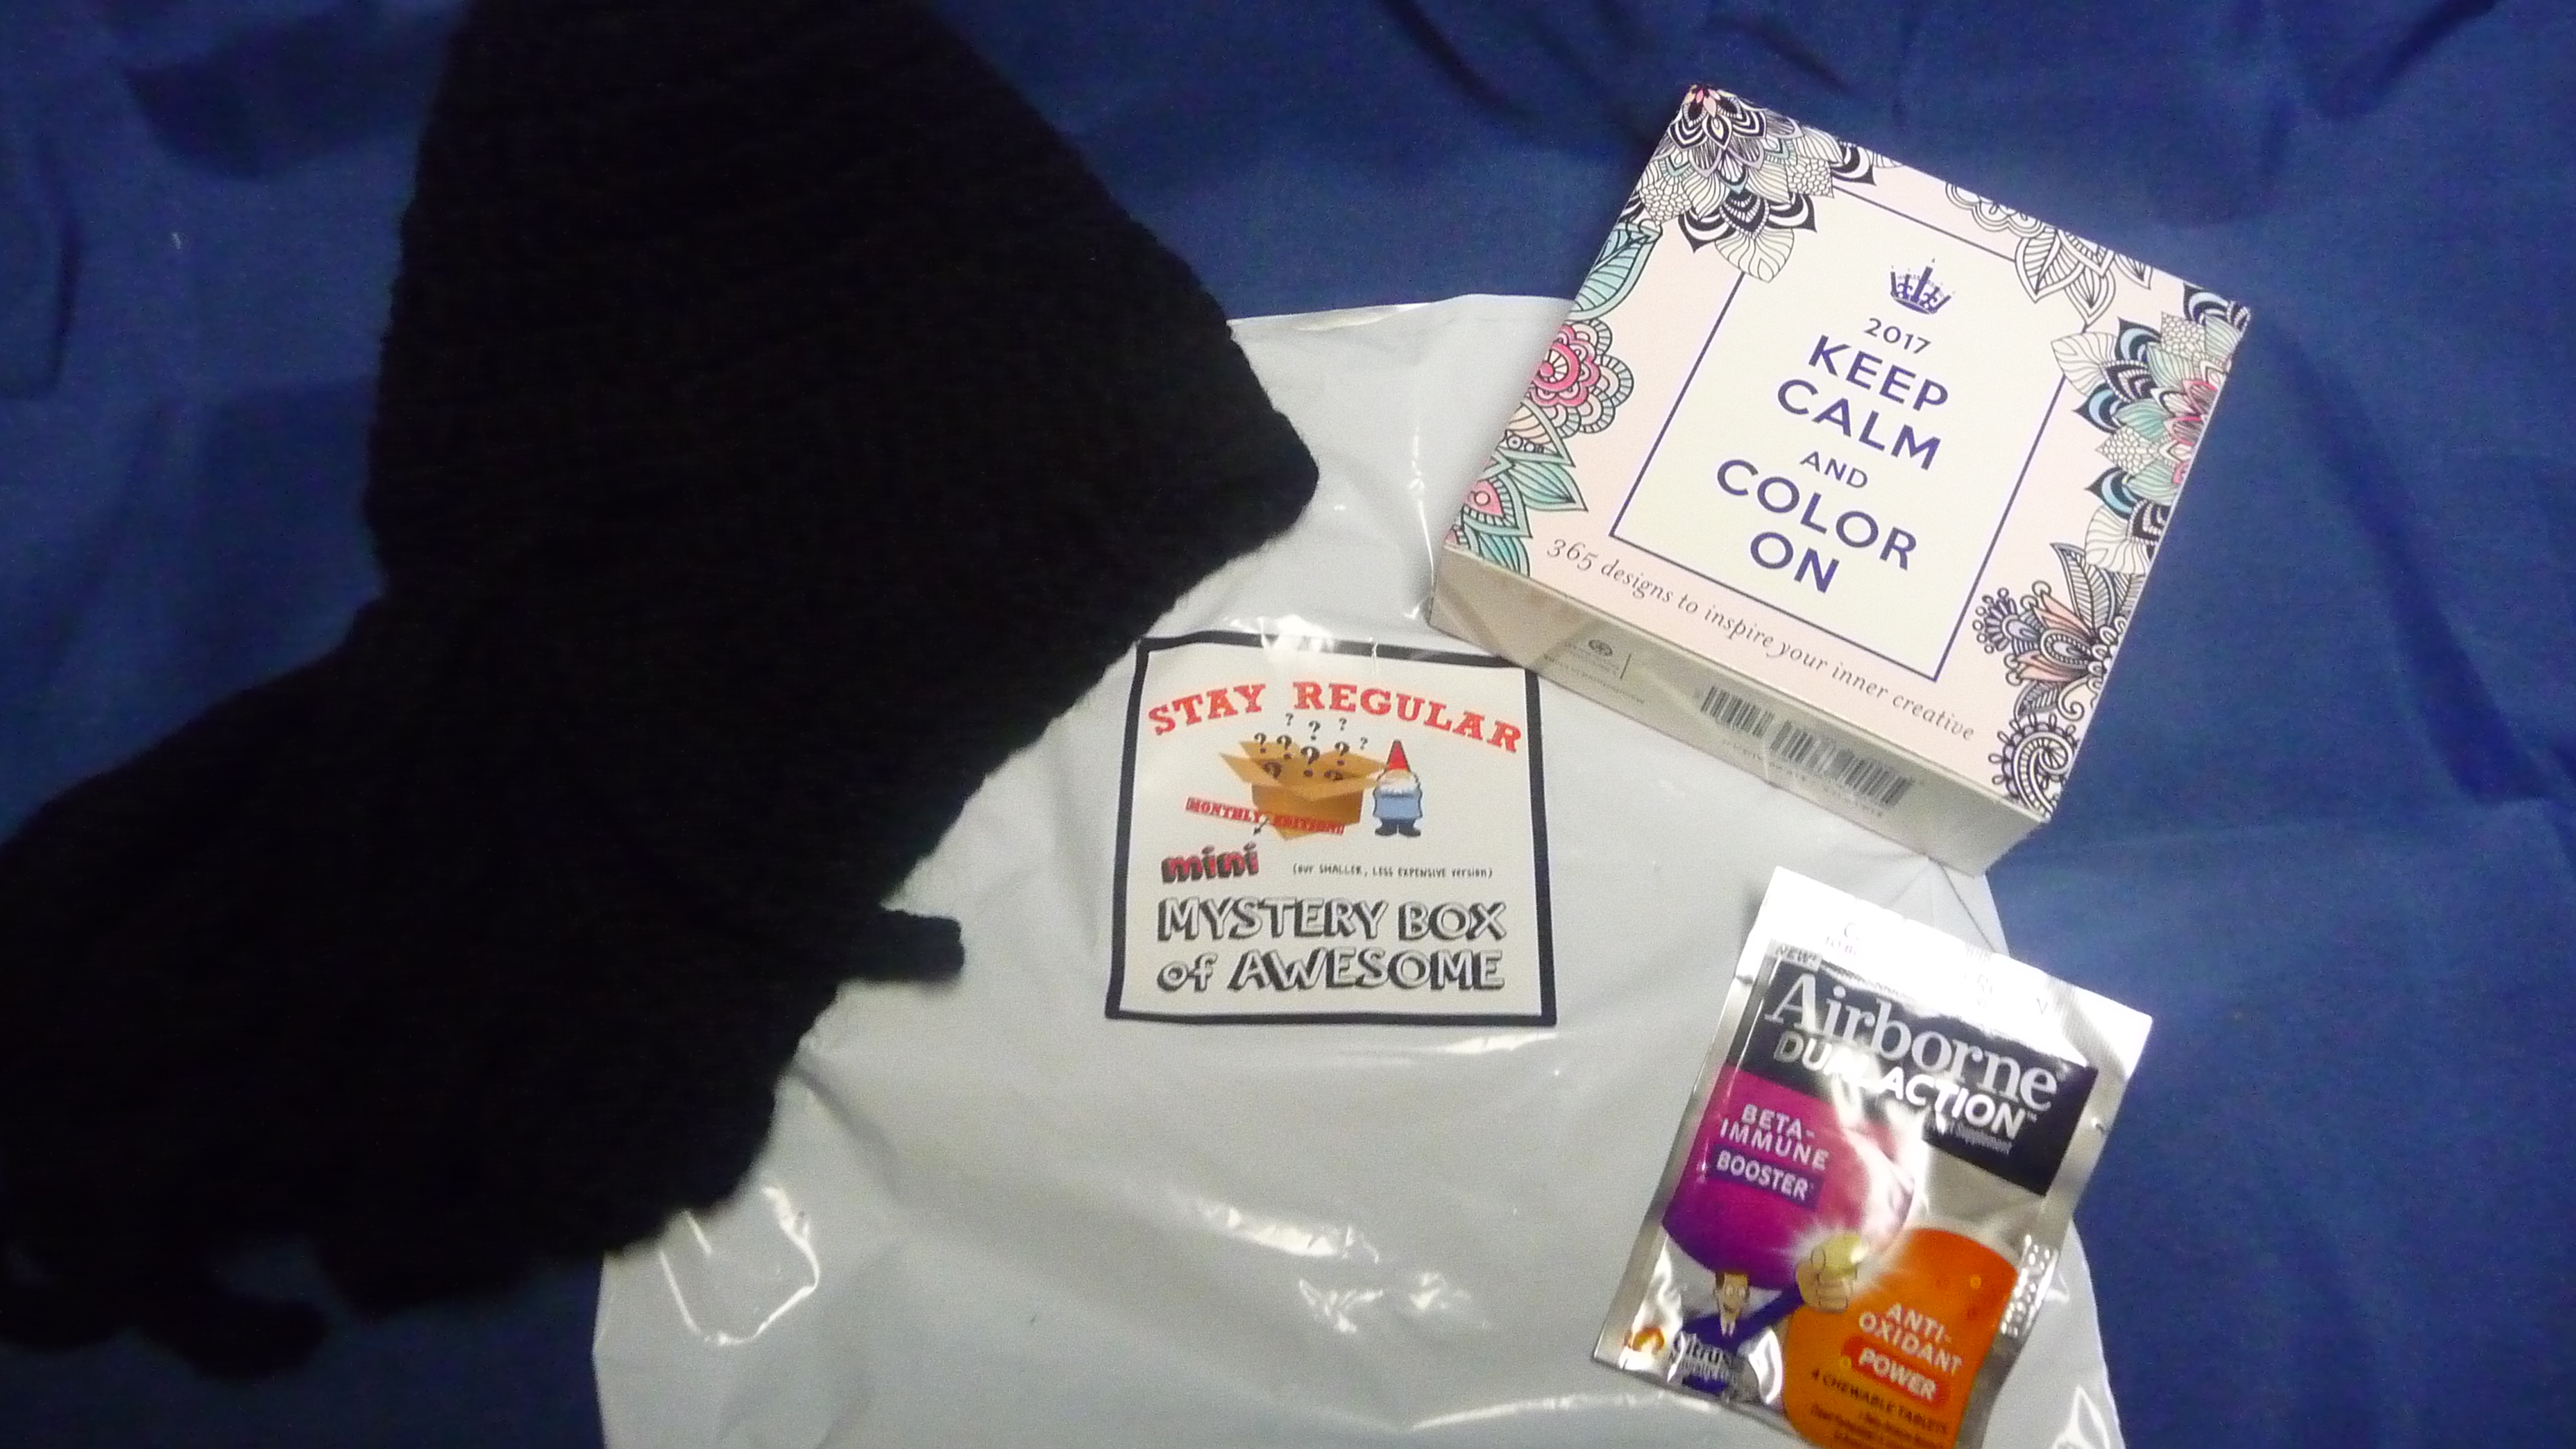 January 2016 Mini Monthly Mystery Box of Awesome Subscription Box Review